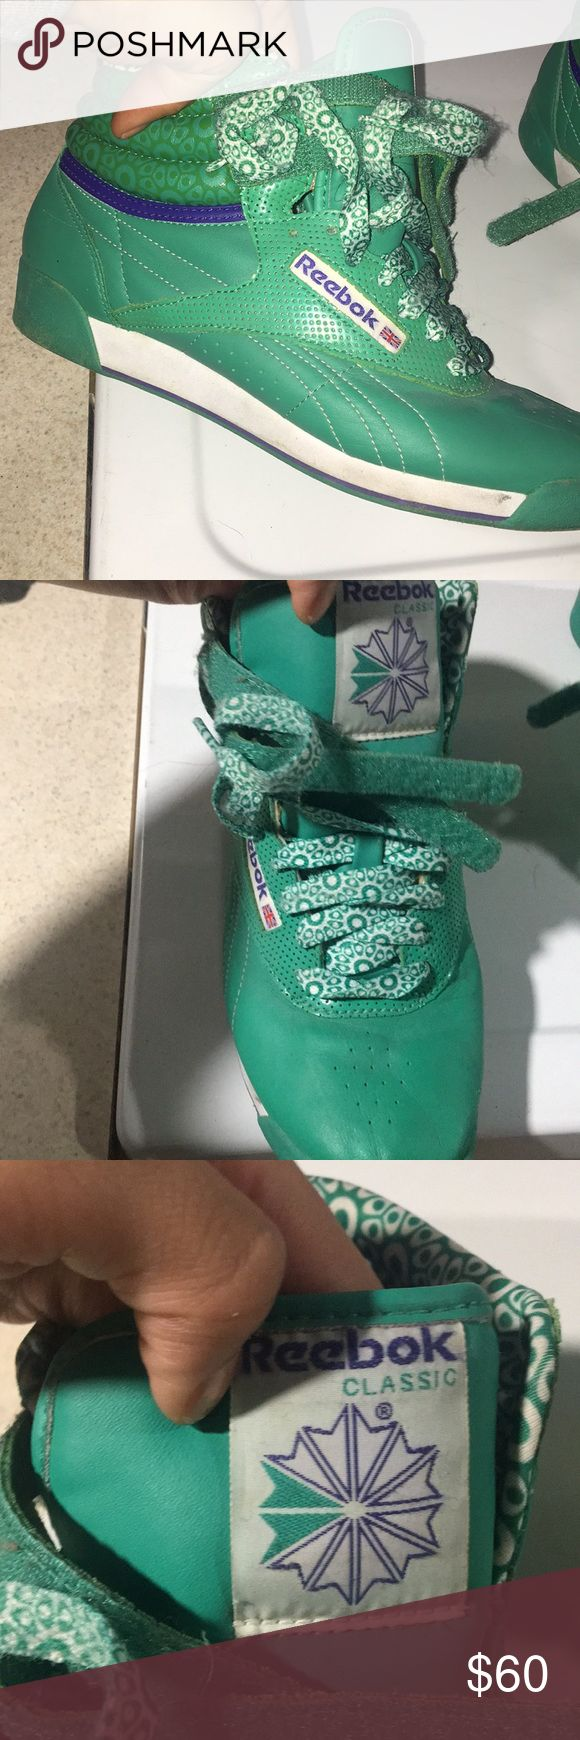 Worn one green classic reebok high tops Almost brand new Reebok Shoes Sneakers